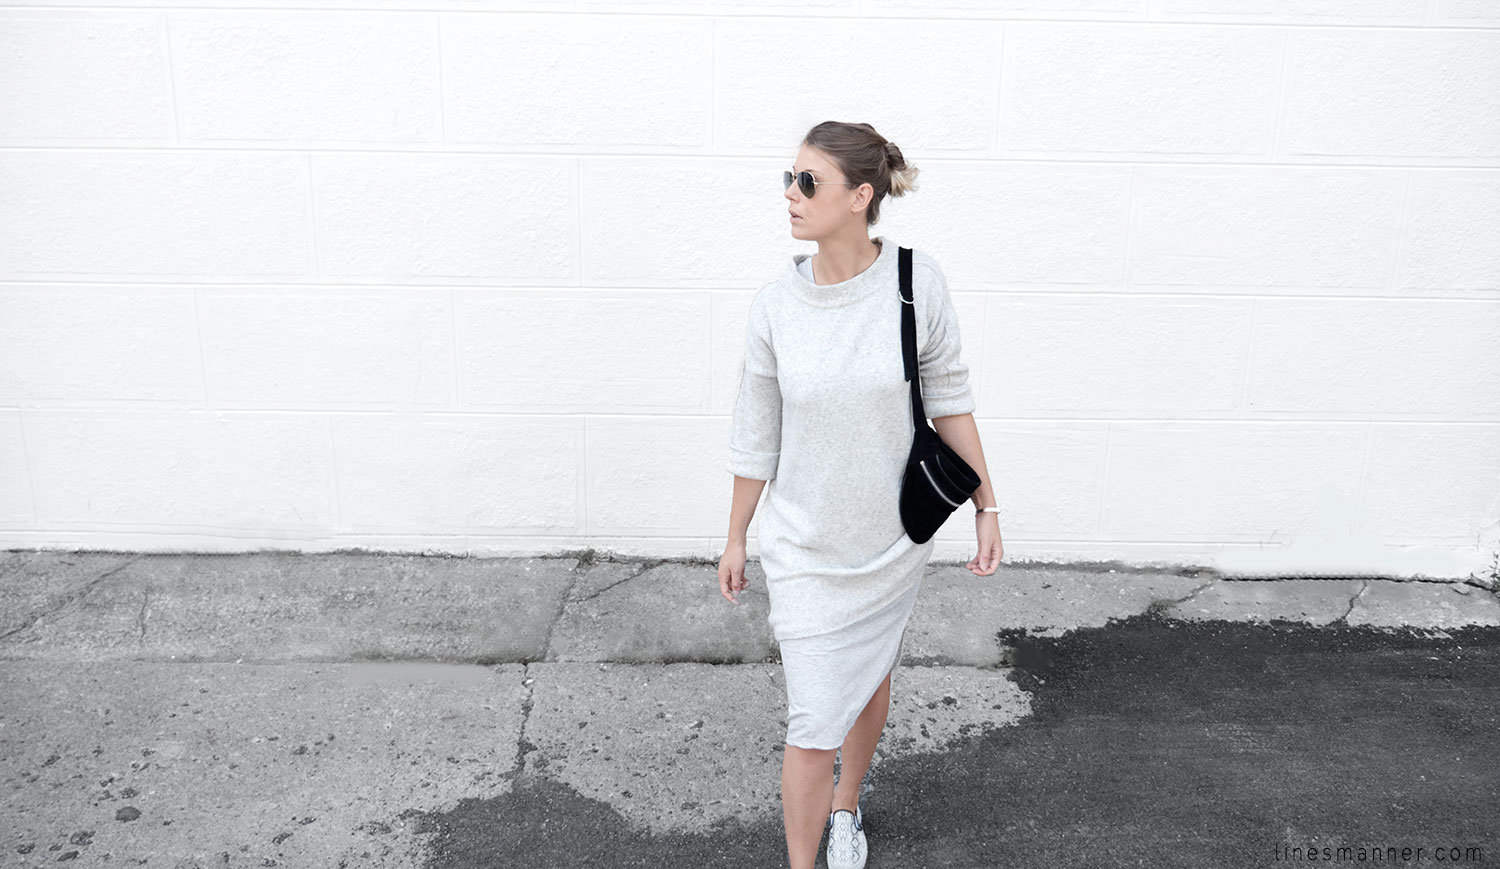 Lines-Manner-Fashion-Collaboration-The_Demeler-Monochrome-Grey_on_Grey-Fresh-Brightly-Outfit-Simplicity-Details-Trend-Minimalist-Flowy-Layering-Sleeves-Sweater_Dress-4